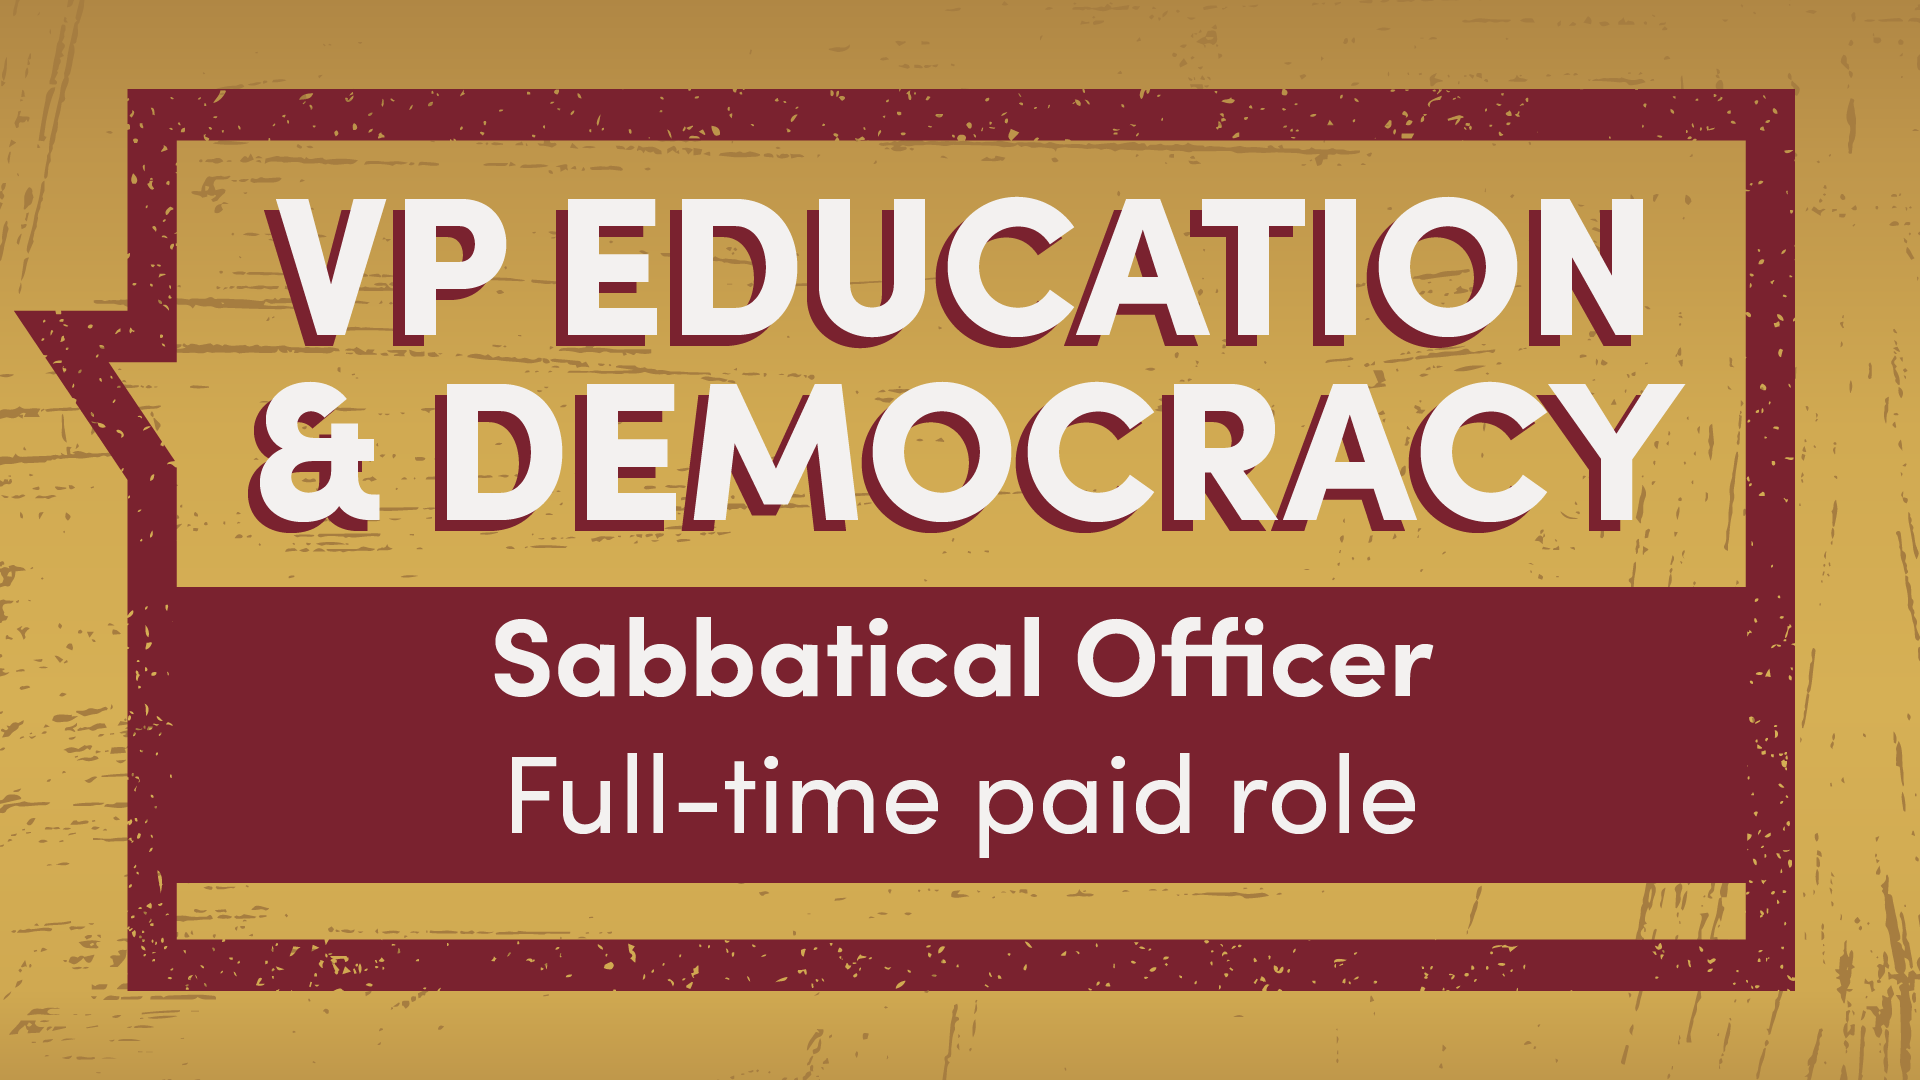 VP Education and Democracy Sabbatical Officer full-time paid role